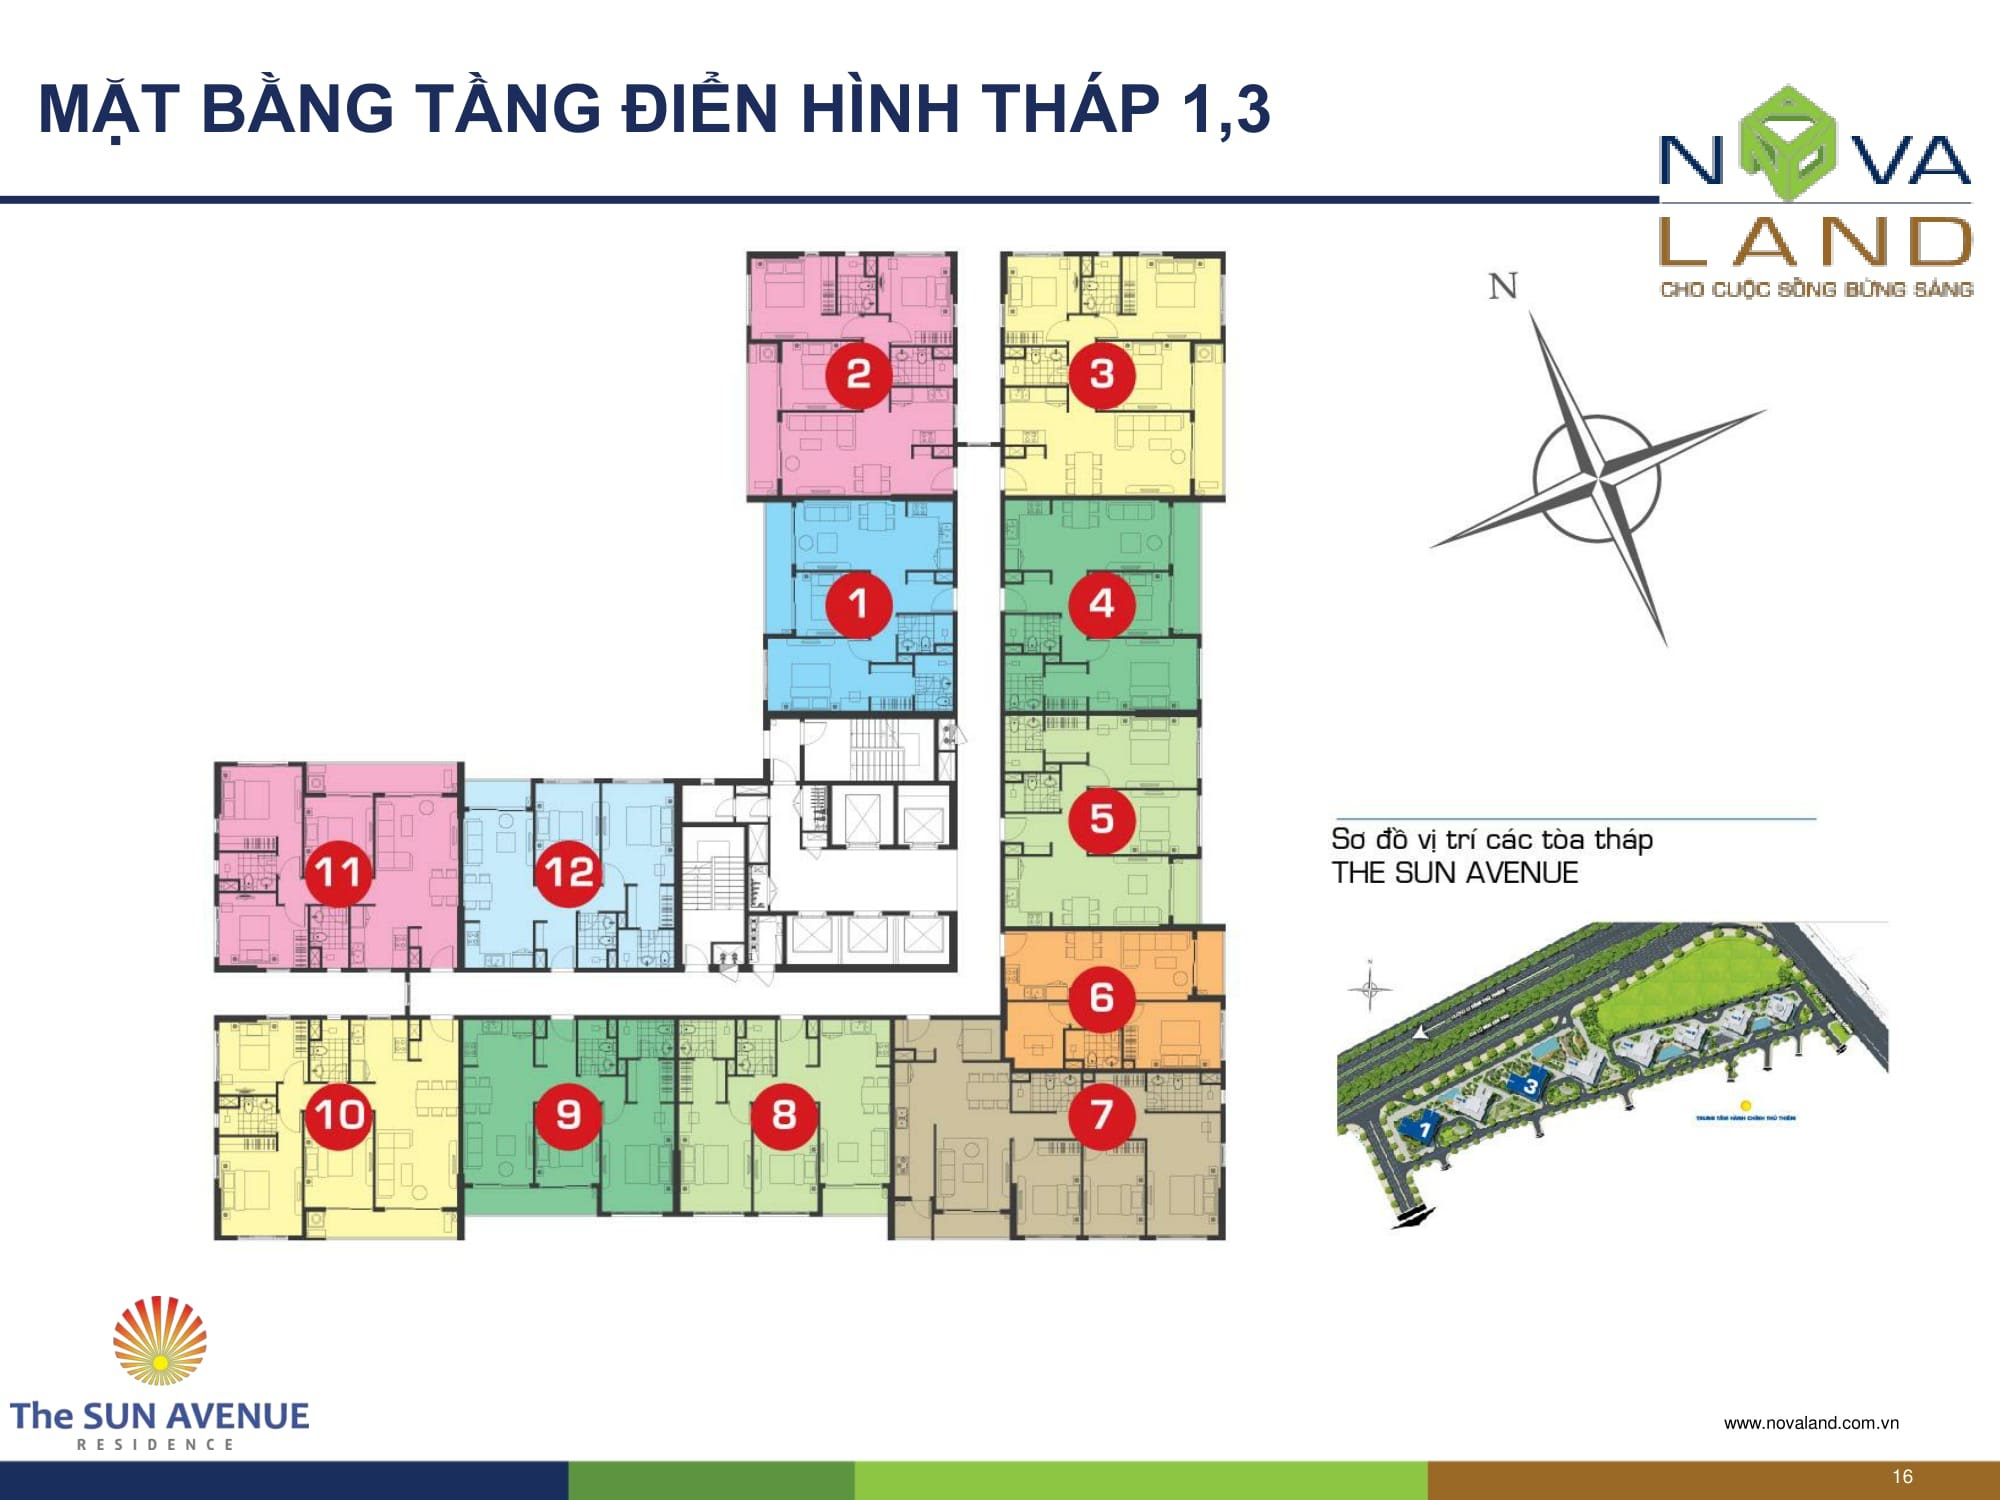 layout-mat-bang-tang-dien-hinh-thap-1-3-the-sun-avenue